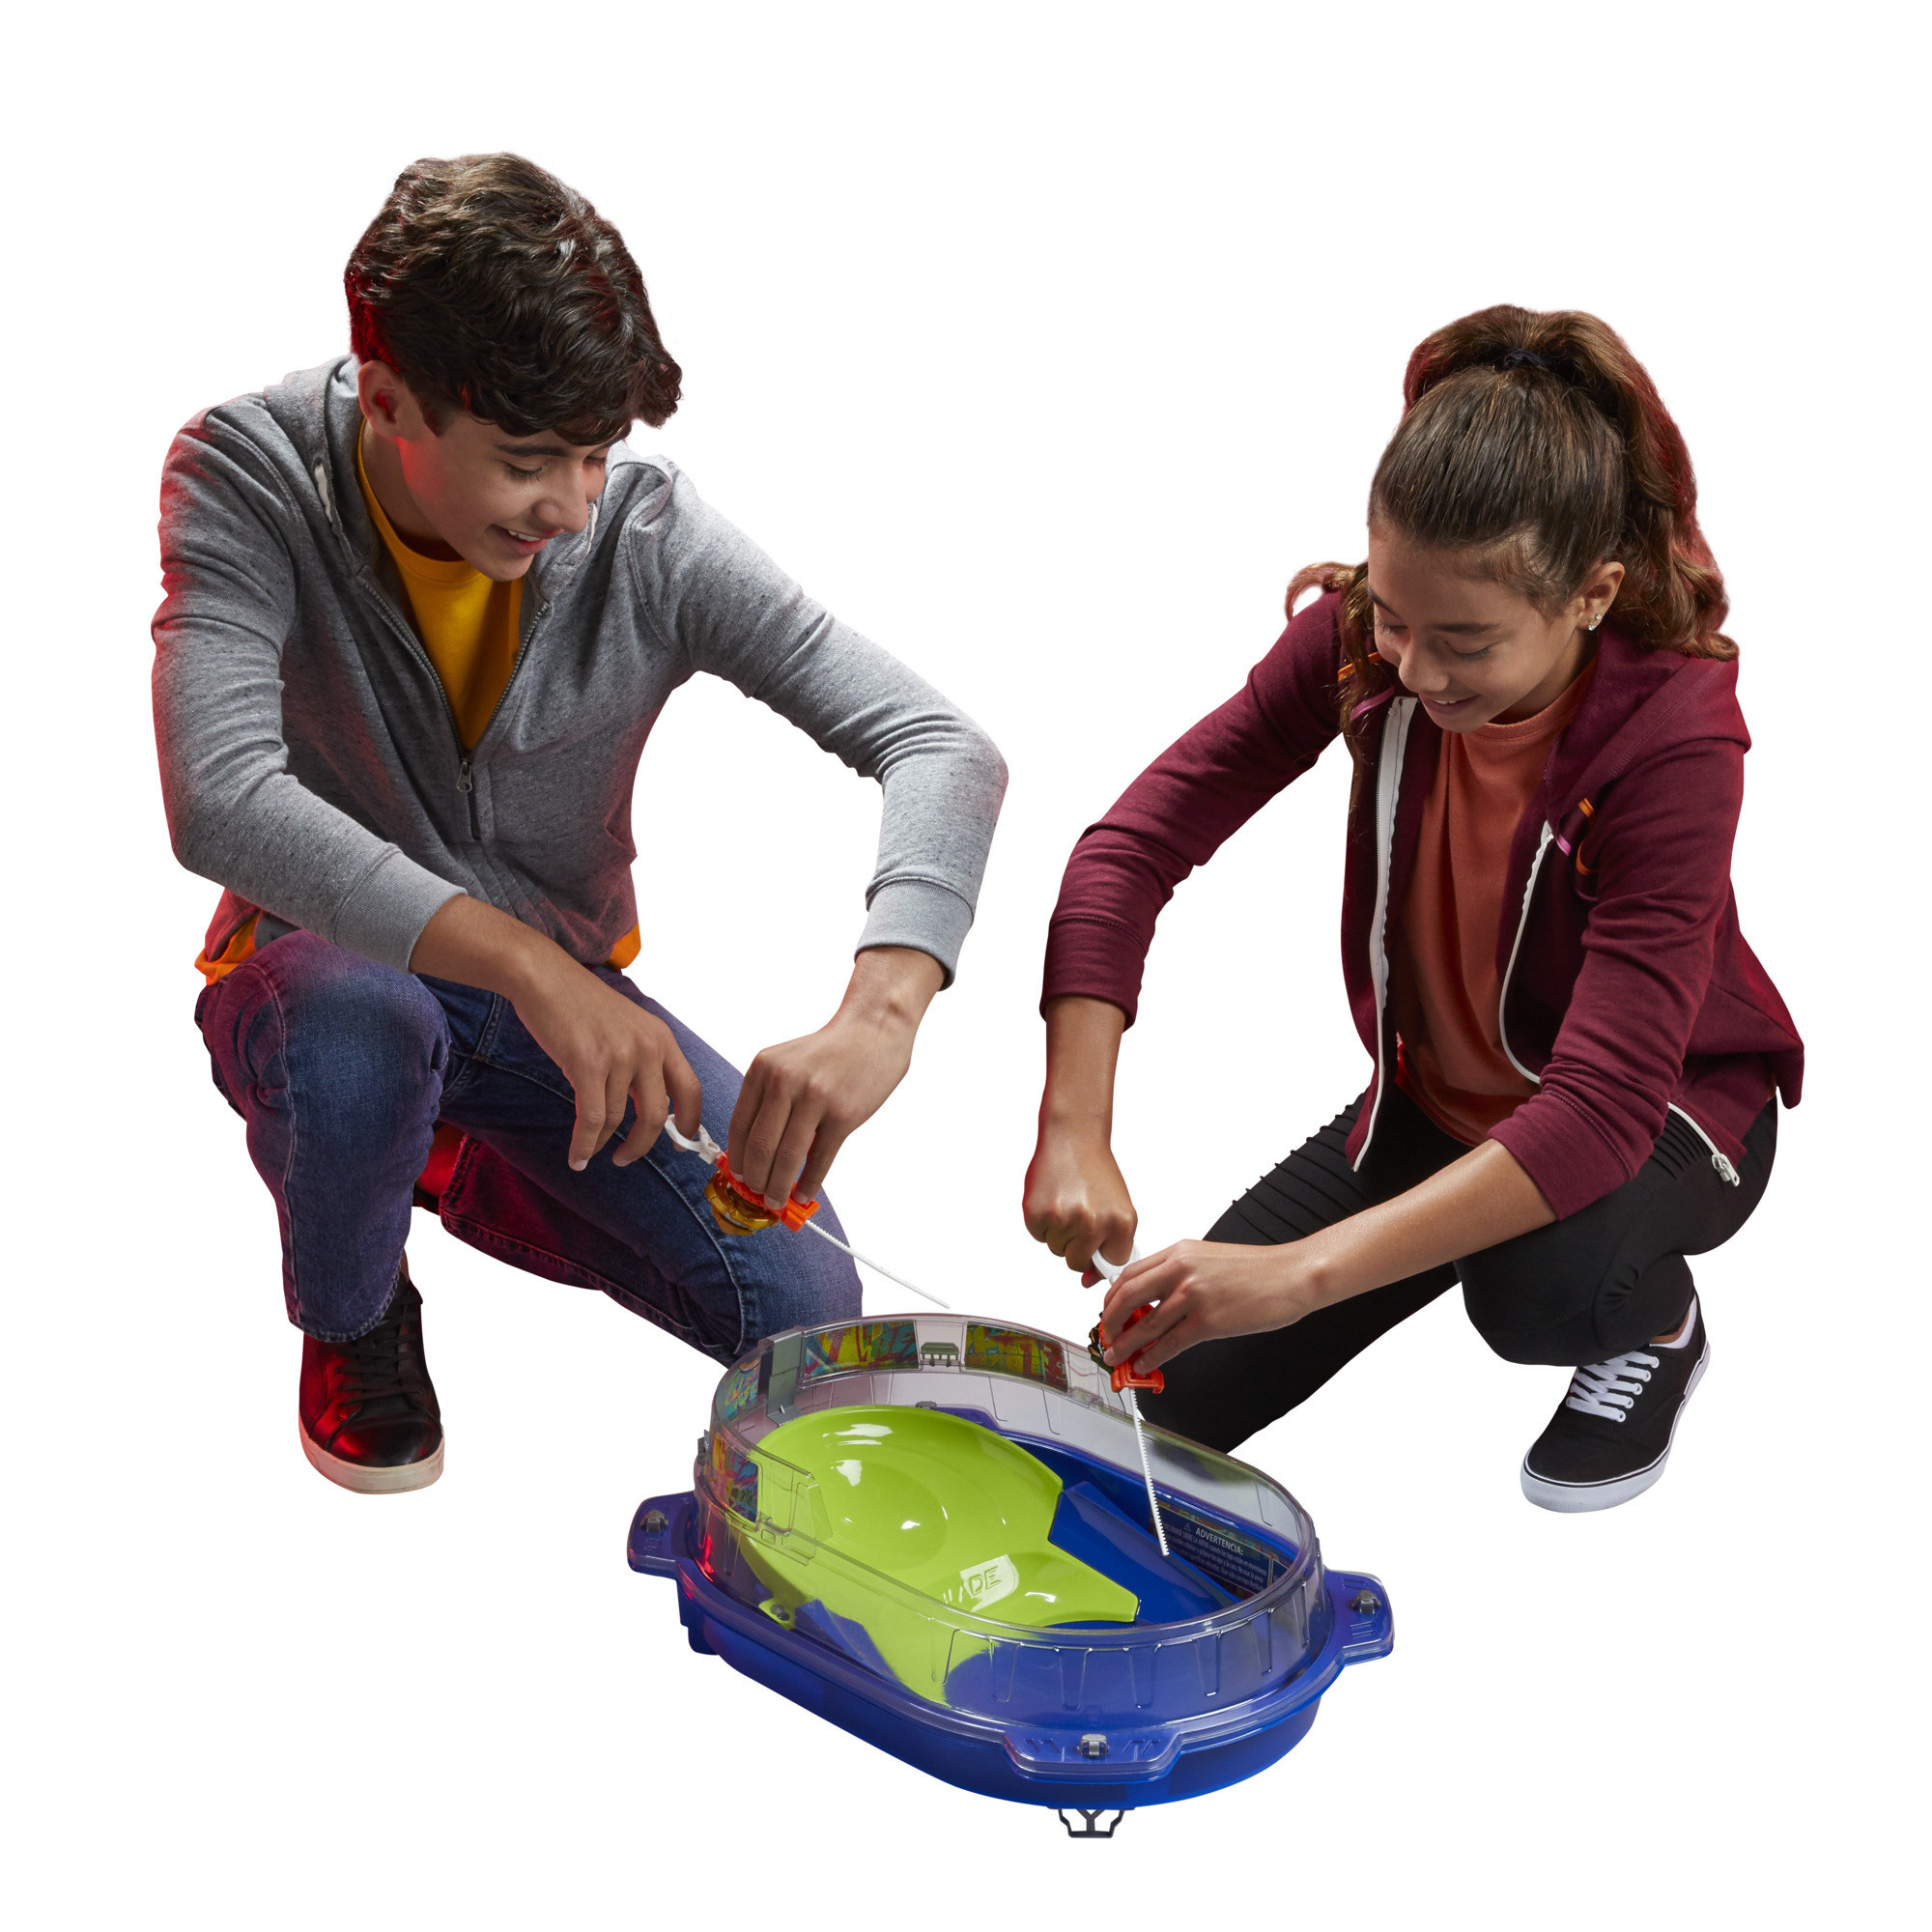 The Beyblade battle set, which is a small plastic arena with raised clear plastic guards around the edges